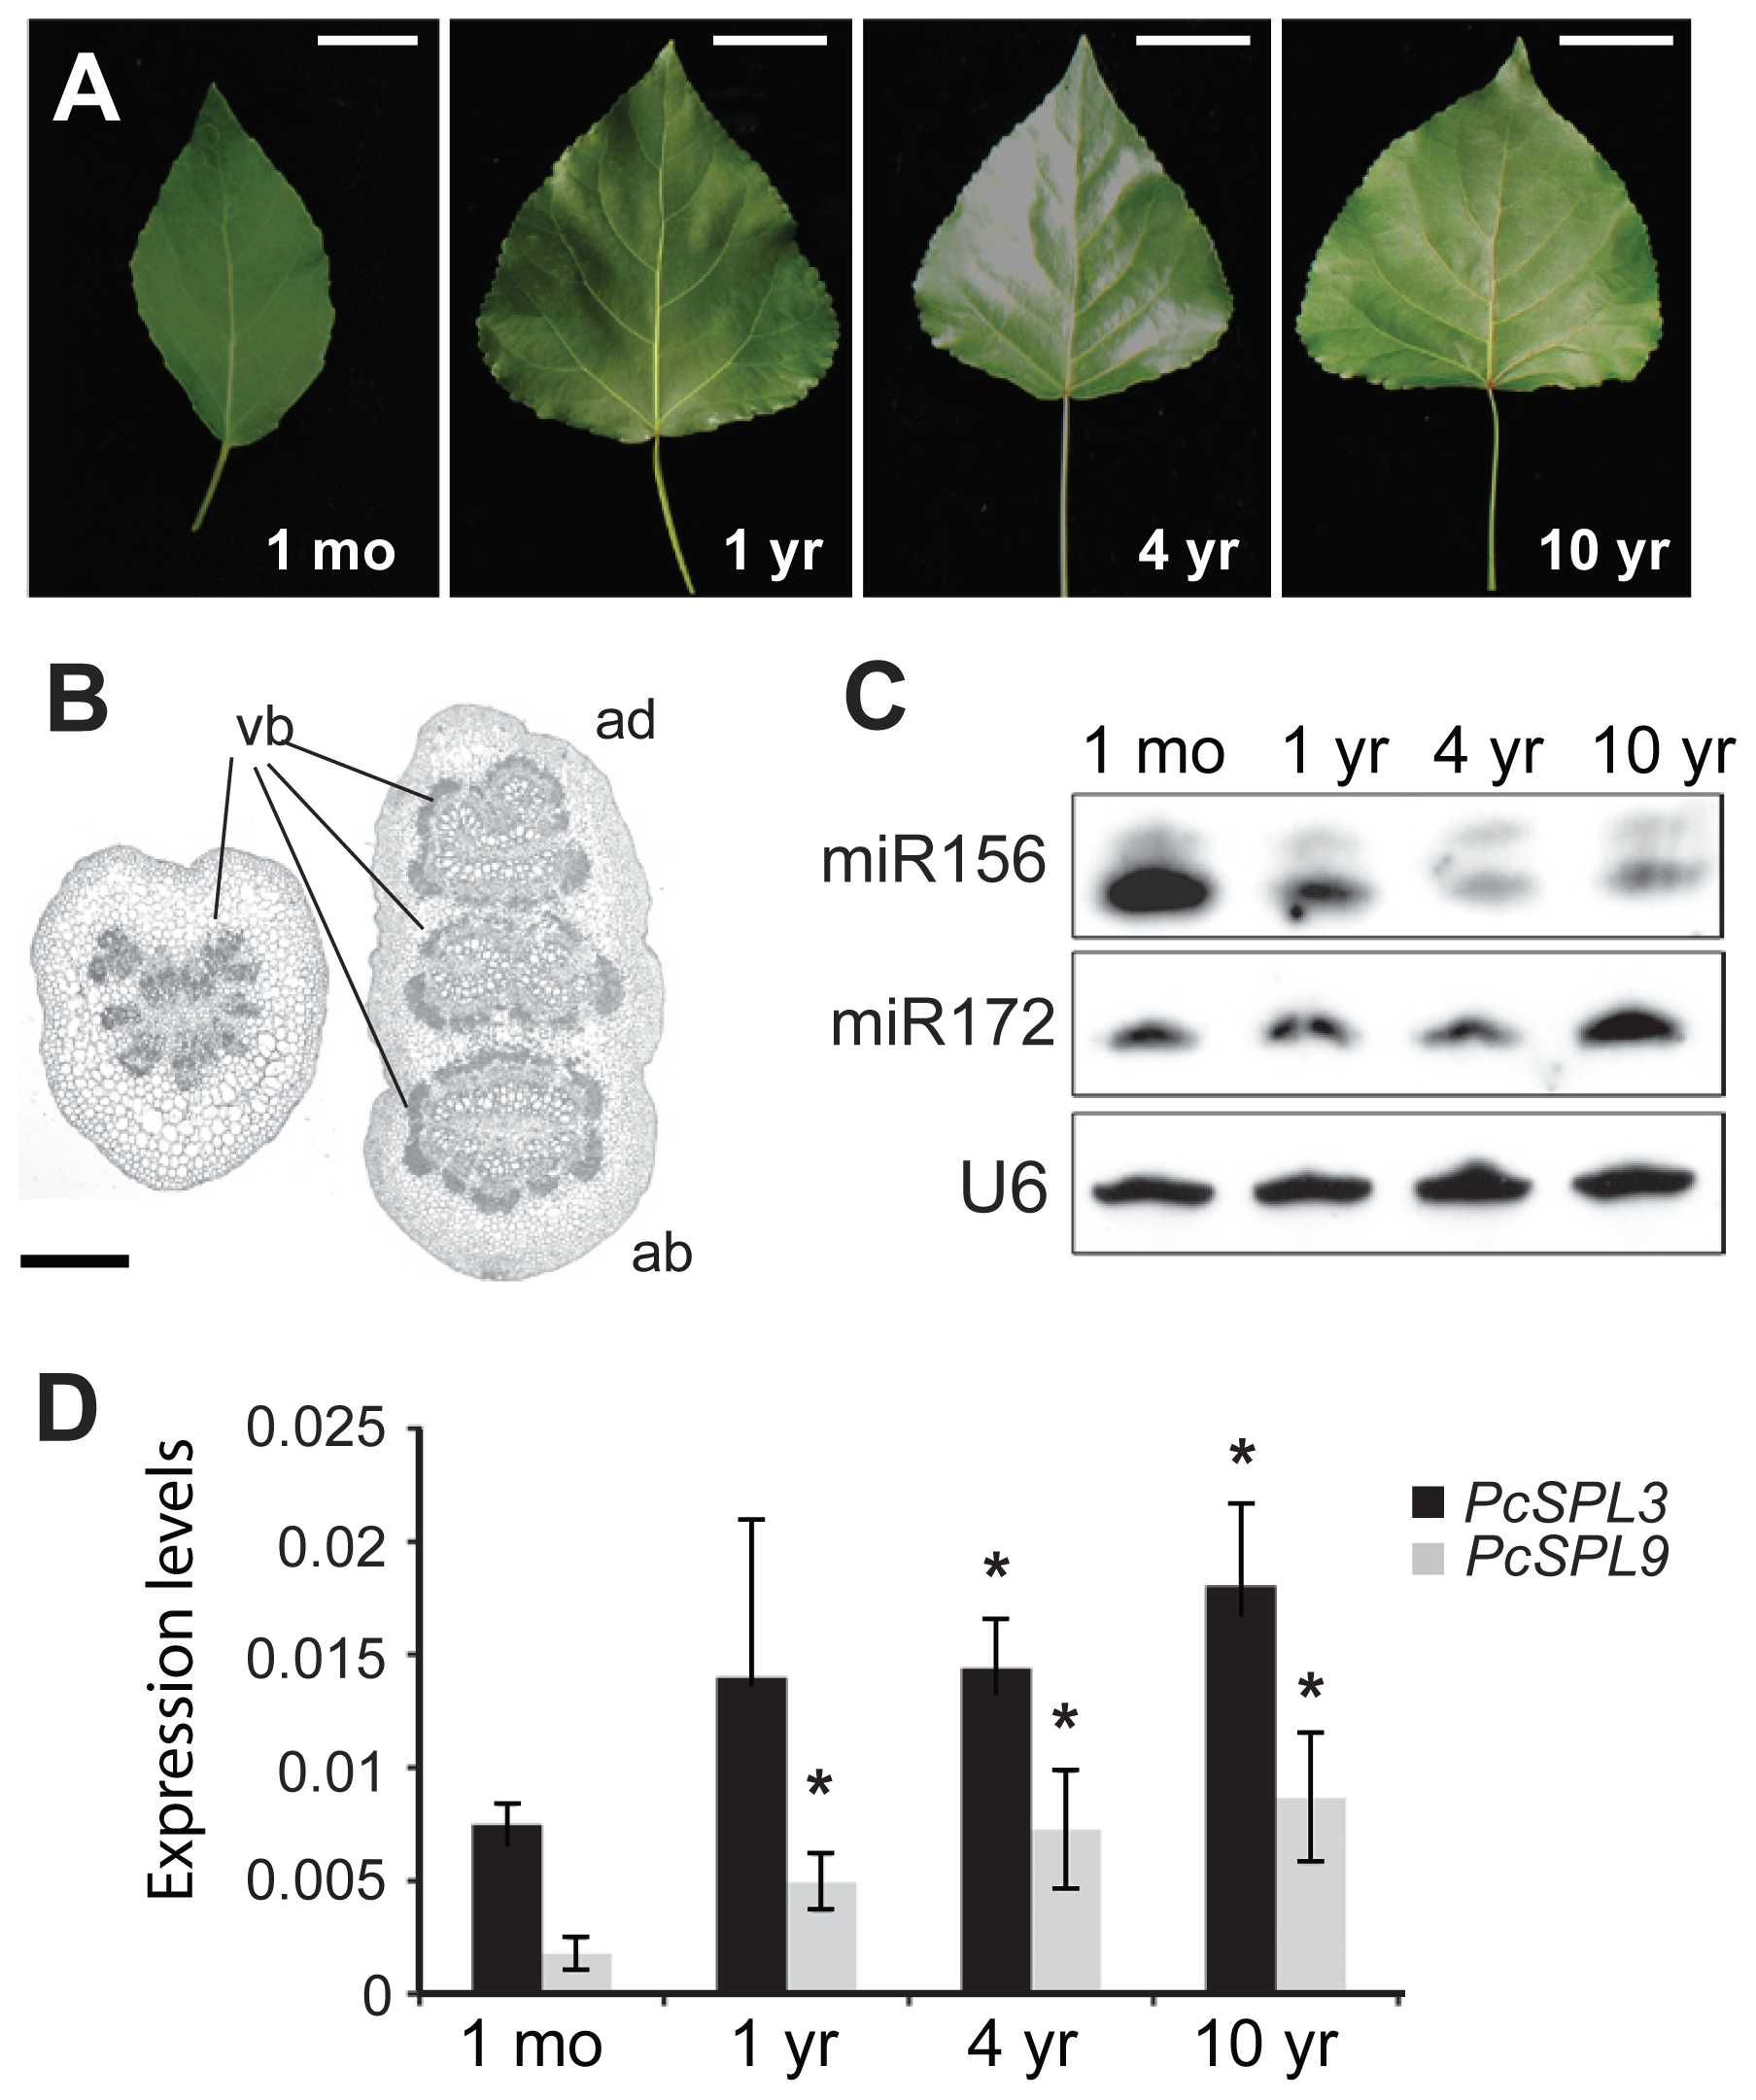 Vegetative phase change and miRNA expression in <i>P. x canadensis</i>.